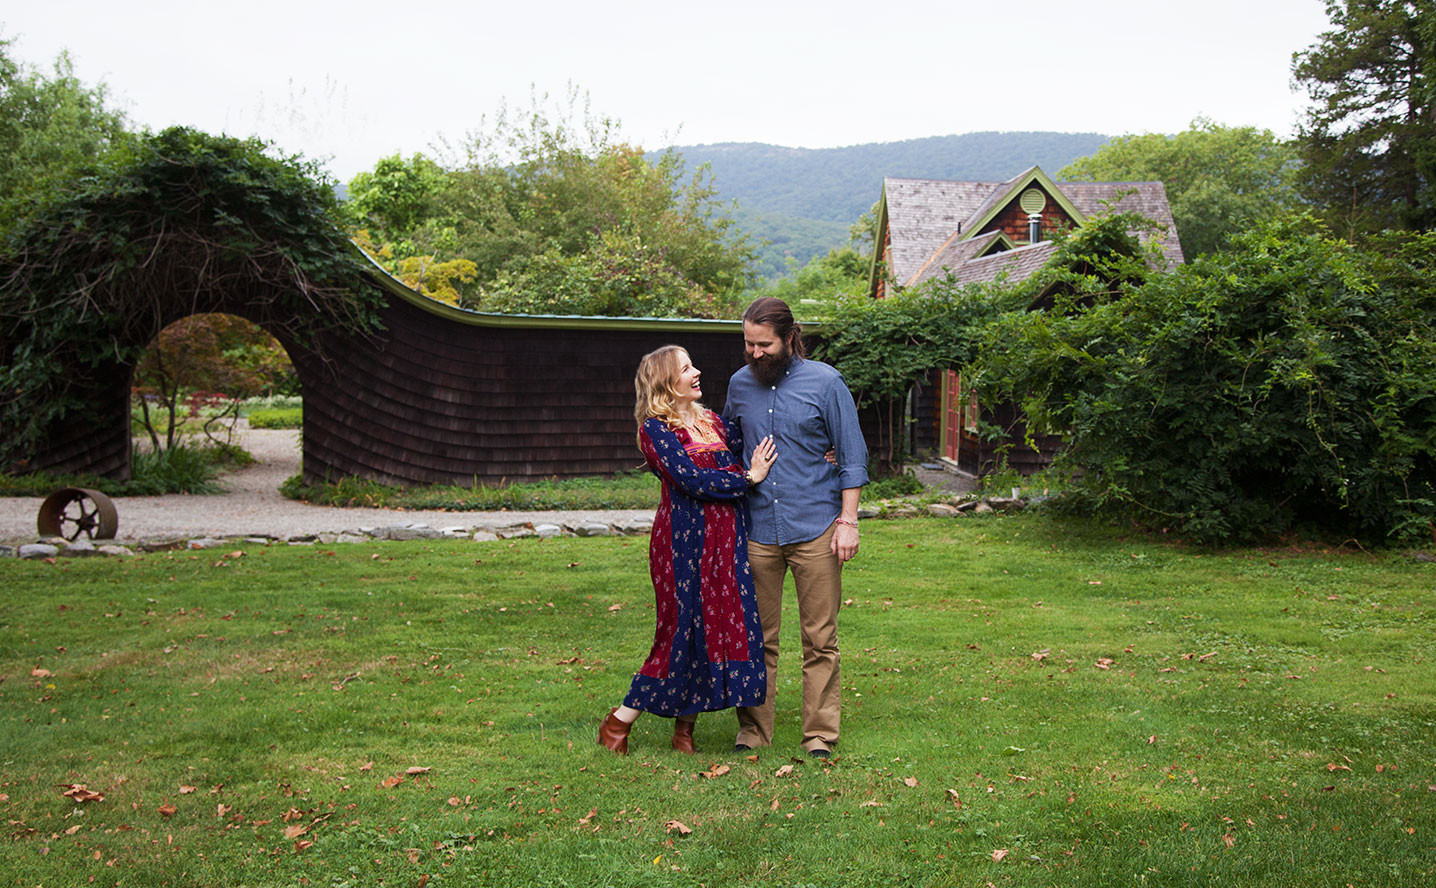 Thunderwing's Jennifer Brandt-Taylor and Nic Taylor on the lawn of their home in New York's Hudson Valley.